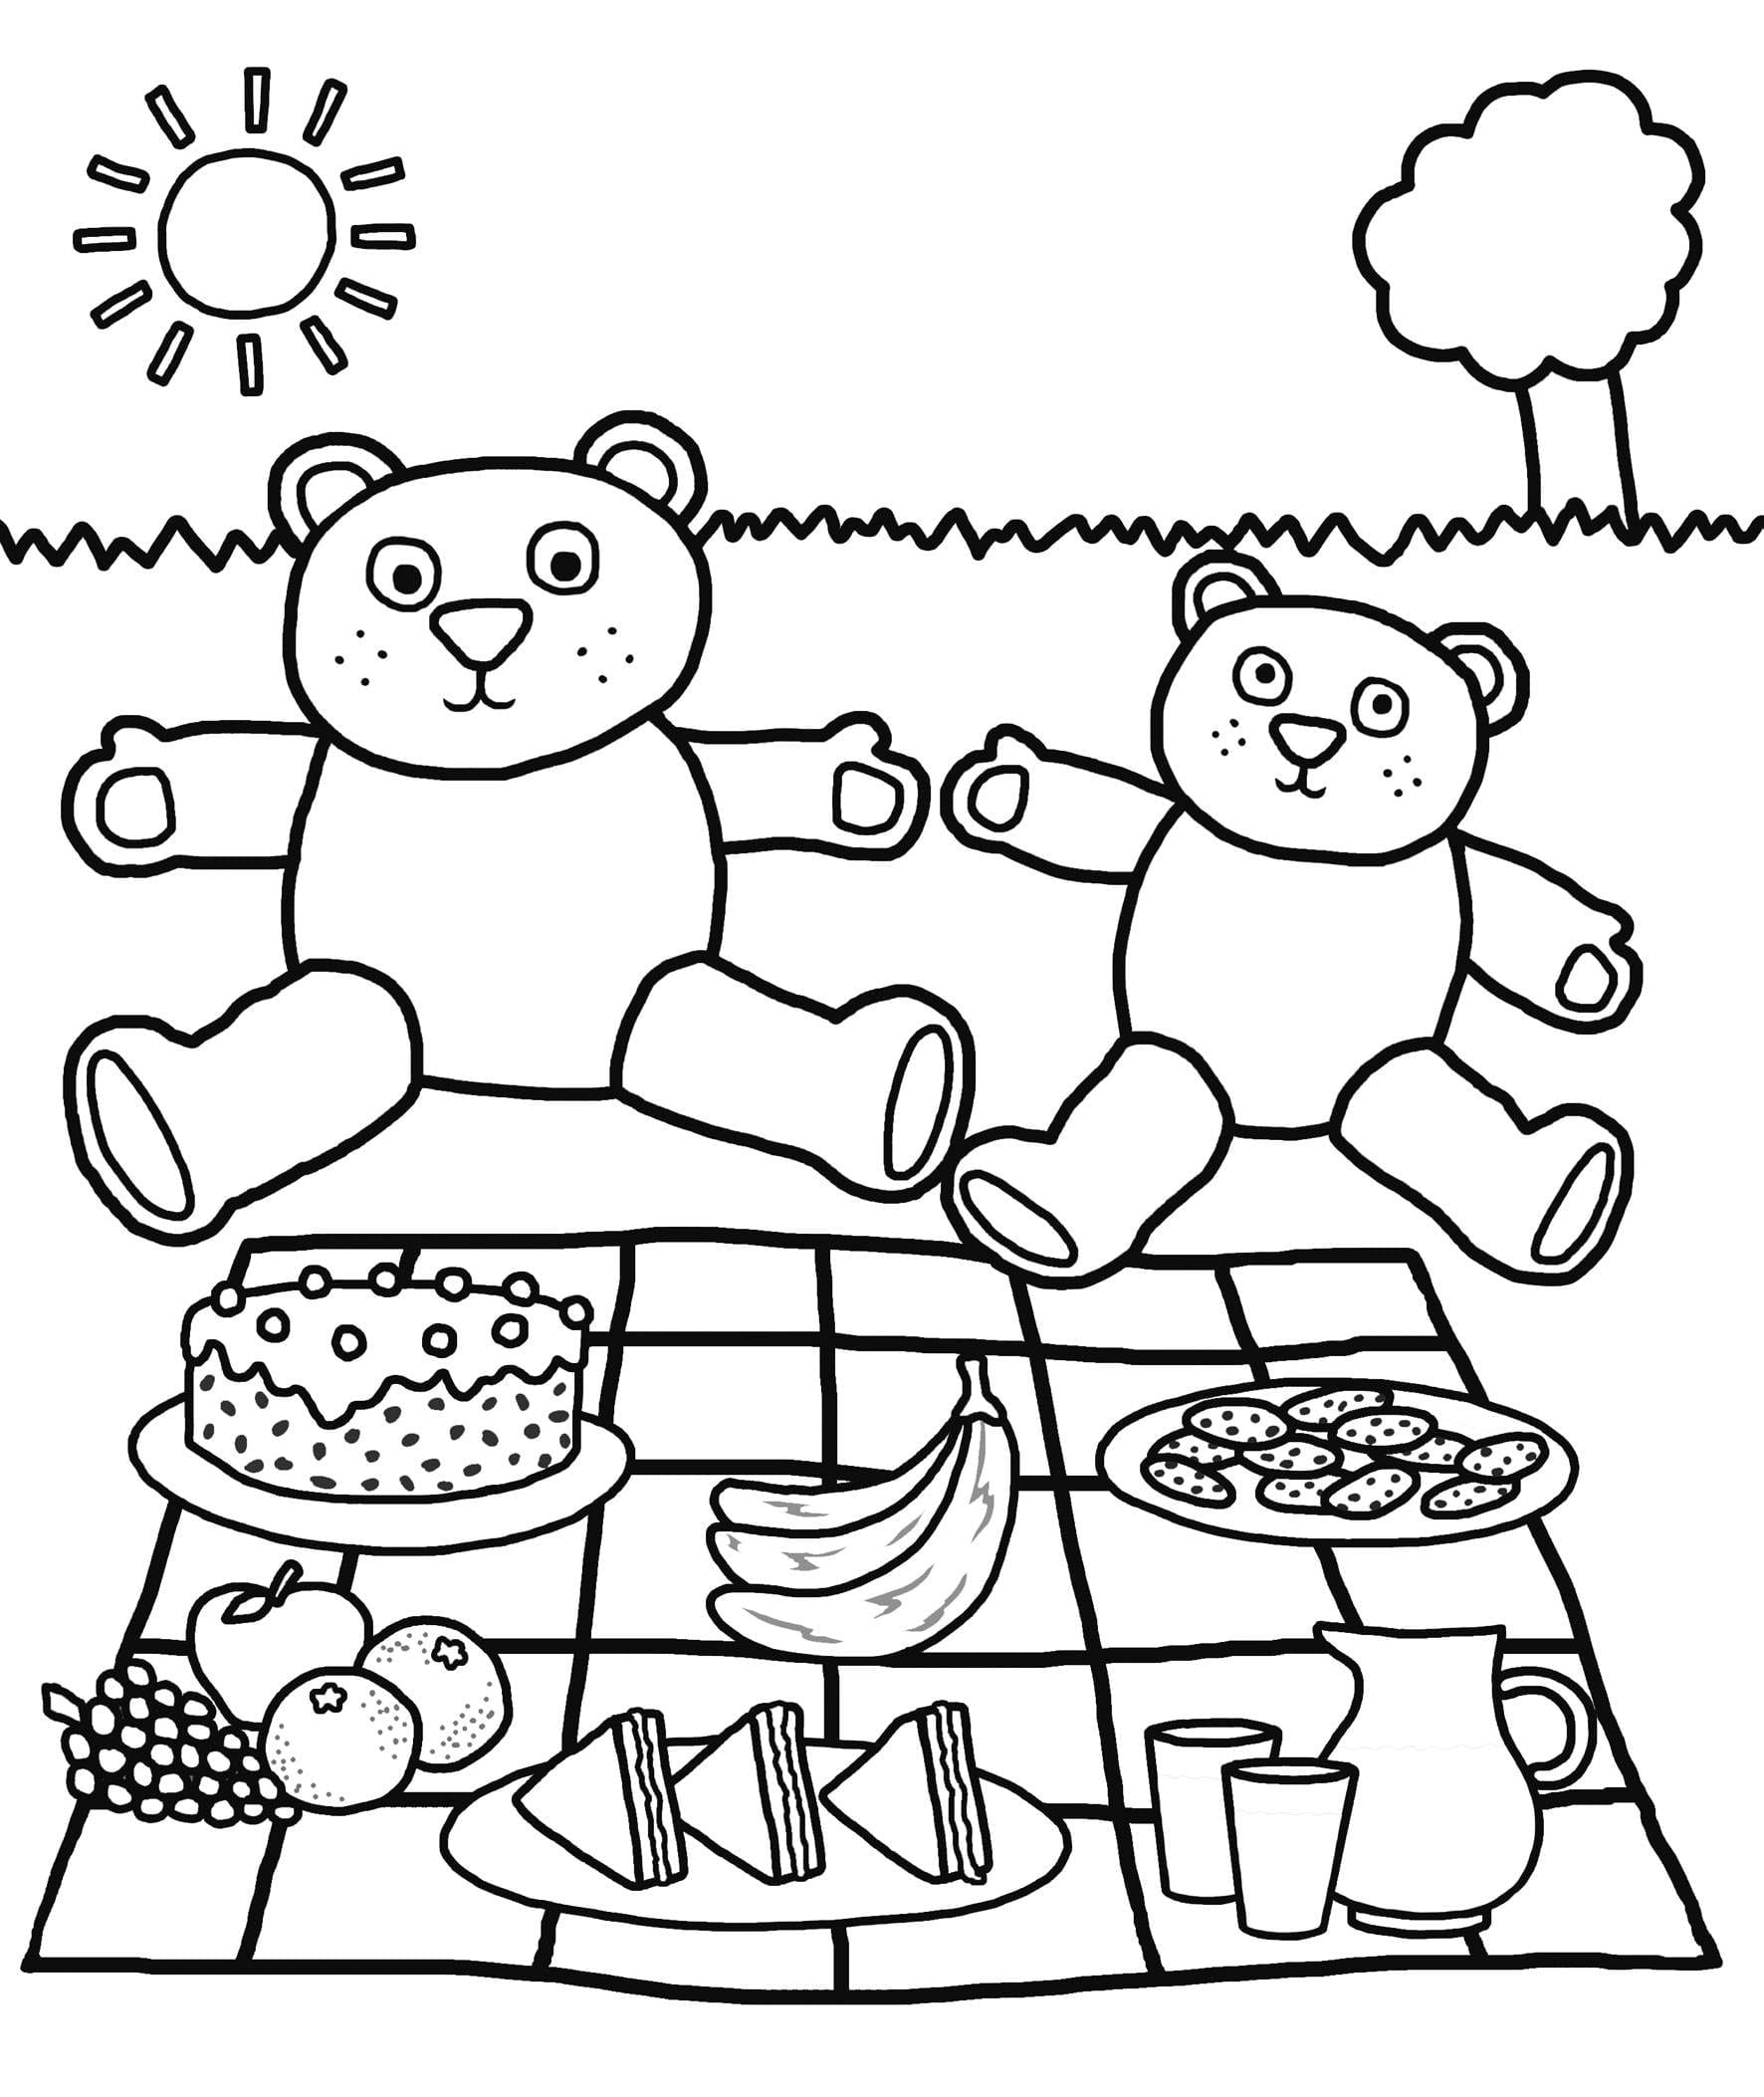 Back To School Coloring Pages Free Printables Image At